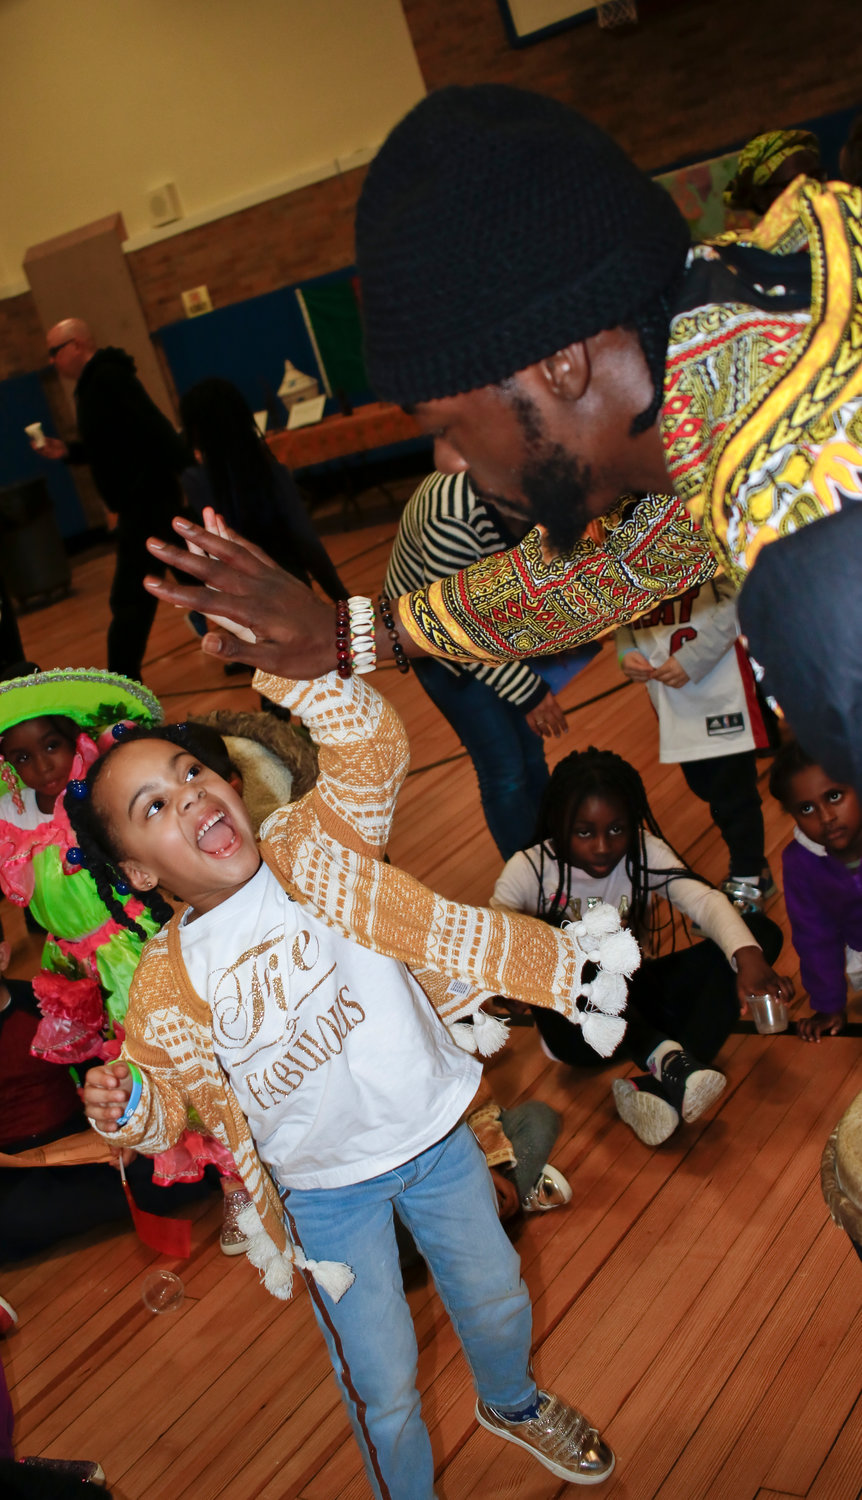 African drum performer Daniel Jones, right, representing the Republic of Guinea, got a happy high five from kindergartener Alyssa Jean after his performance. Alyssa and her family represented Barbados at the event.